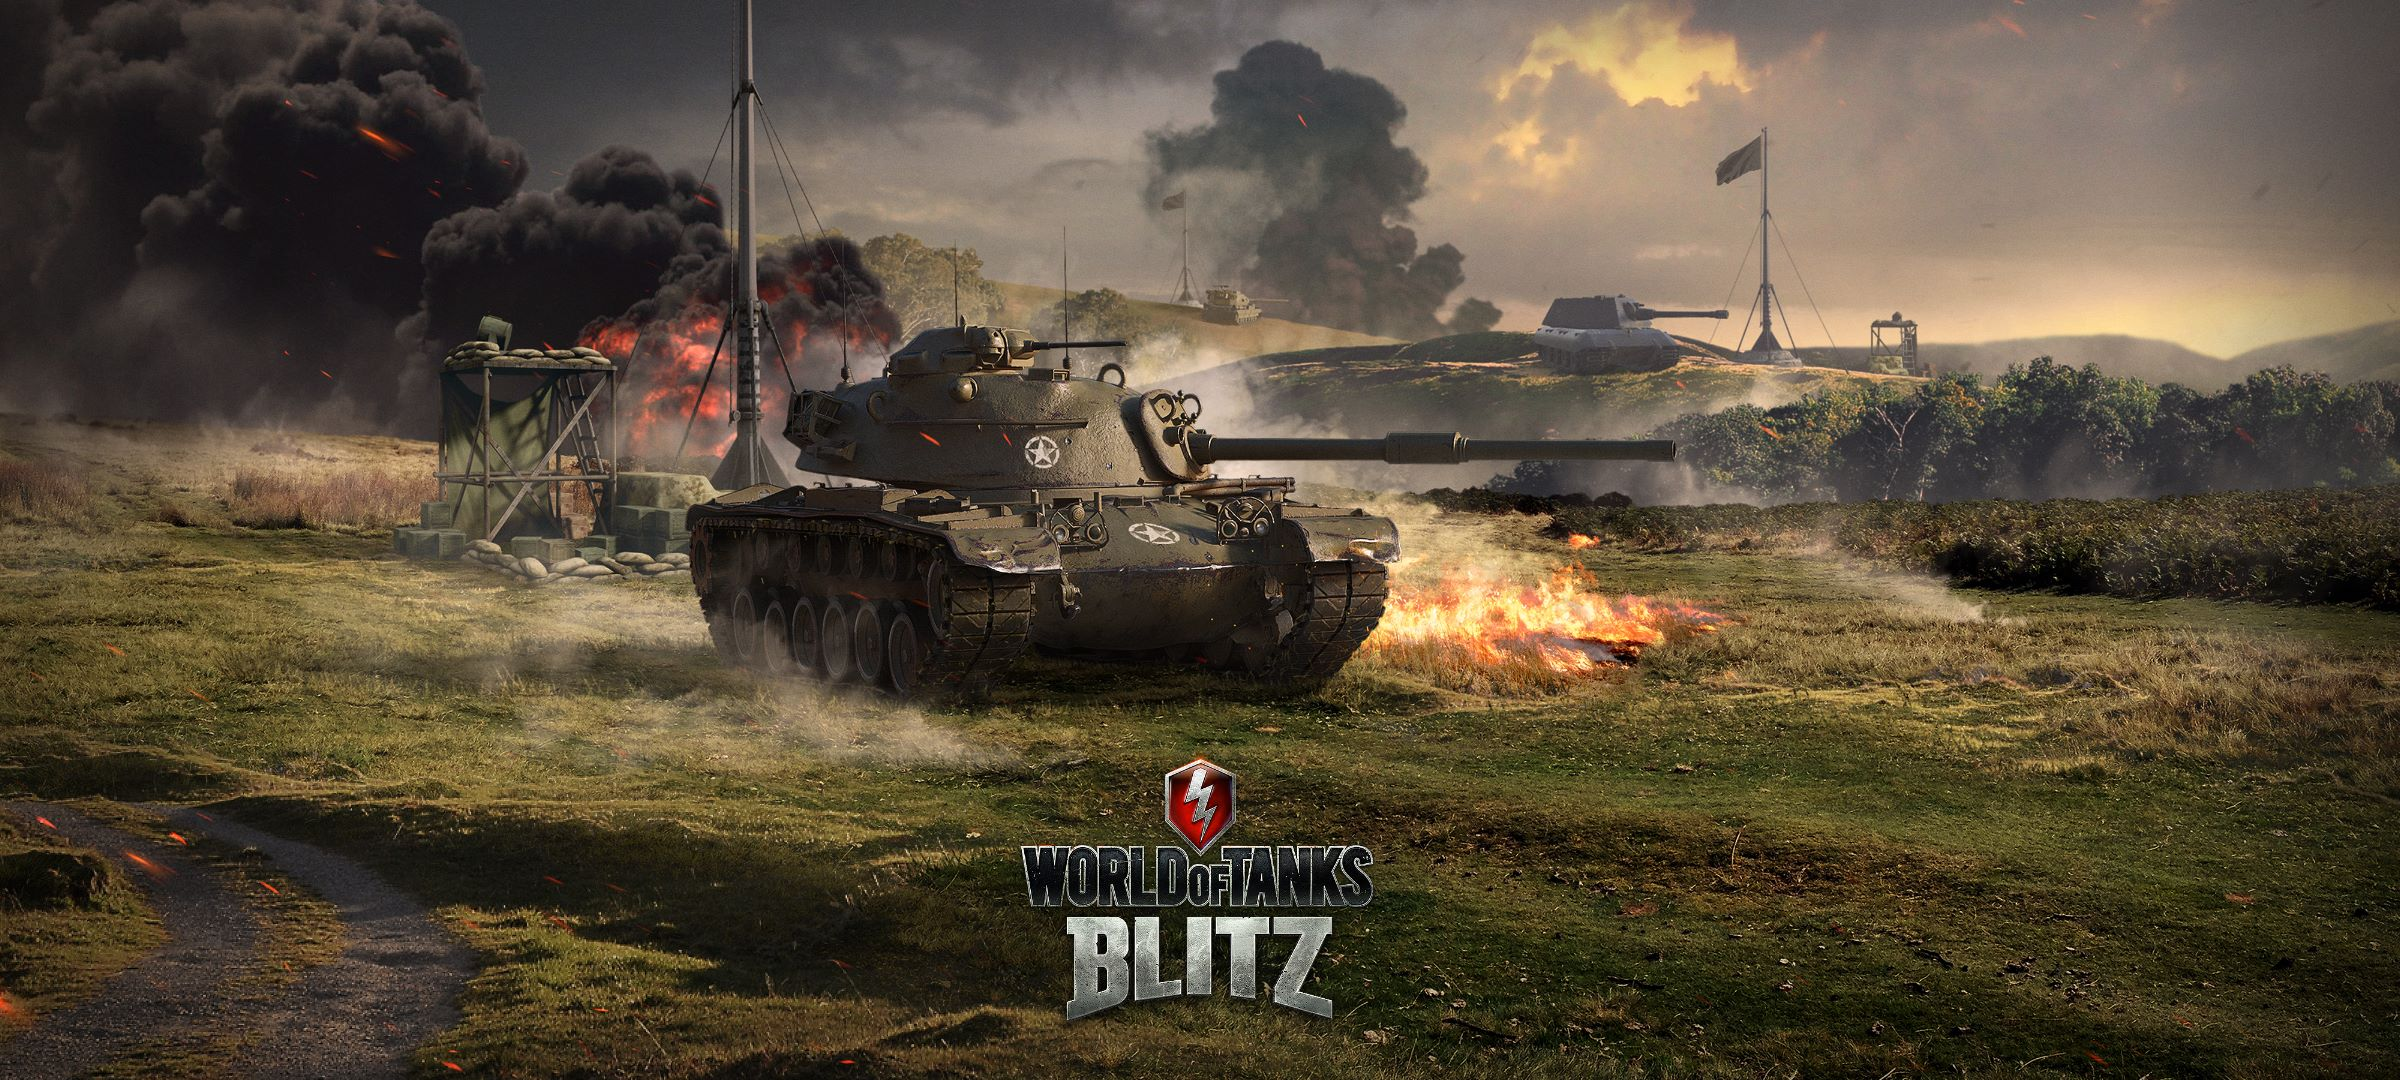 world of tanks team battle matchmaking World of tanks (wot) is a massively multiplayer online game developed by the belarusian-cypriot company wargaming, featuring mid-20th century (1930s-1960s) era combat vehicles.